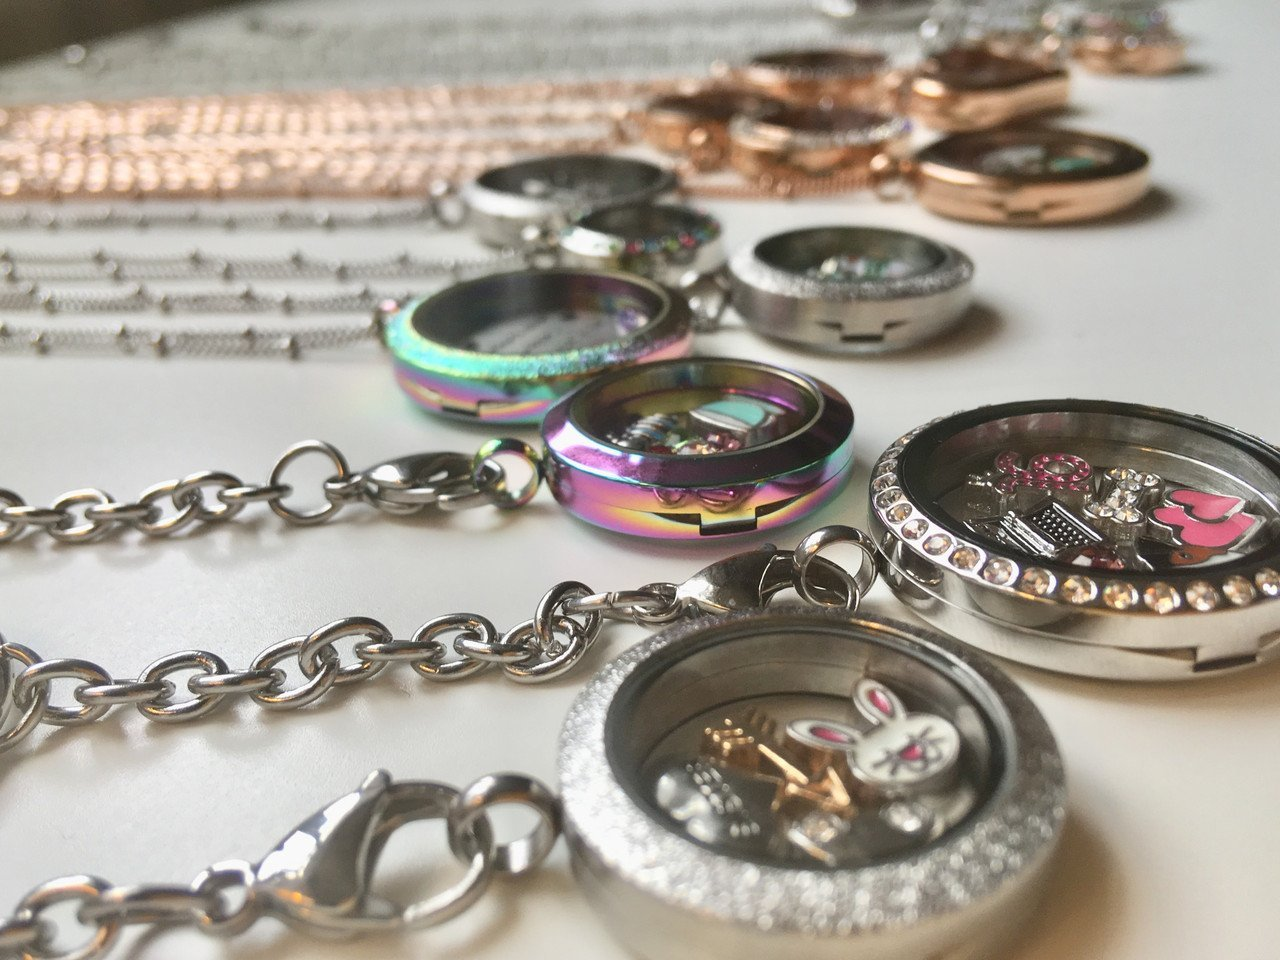 All lockets are composed of high quality stainless steel